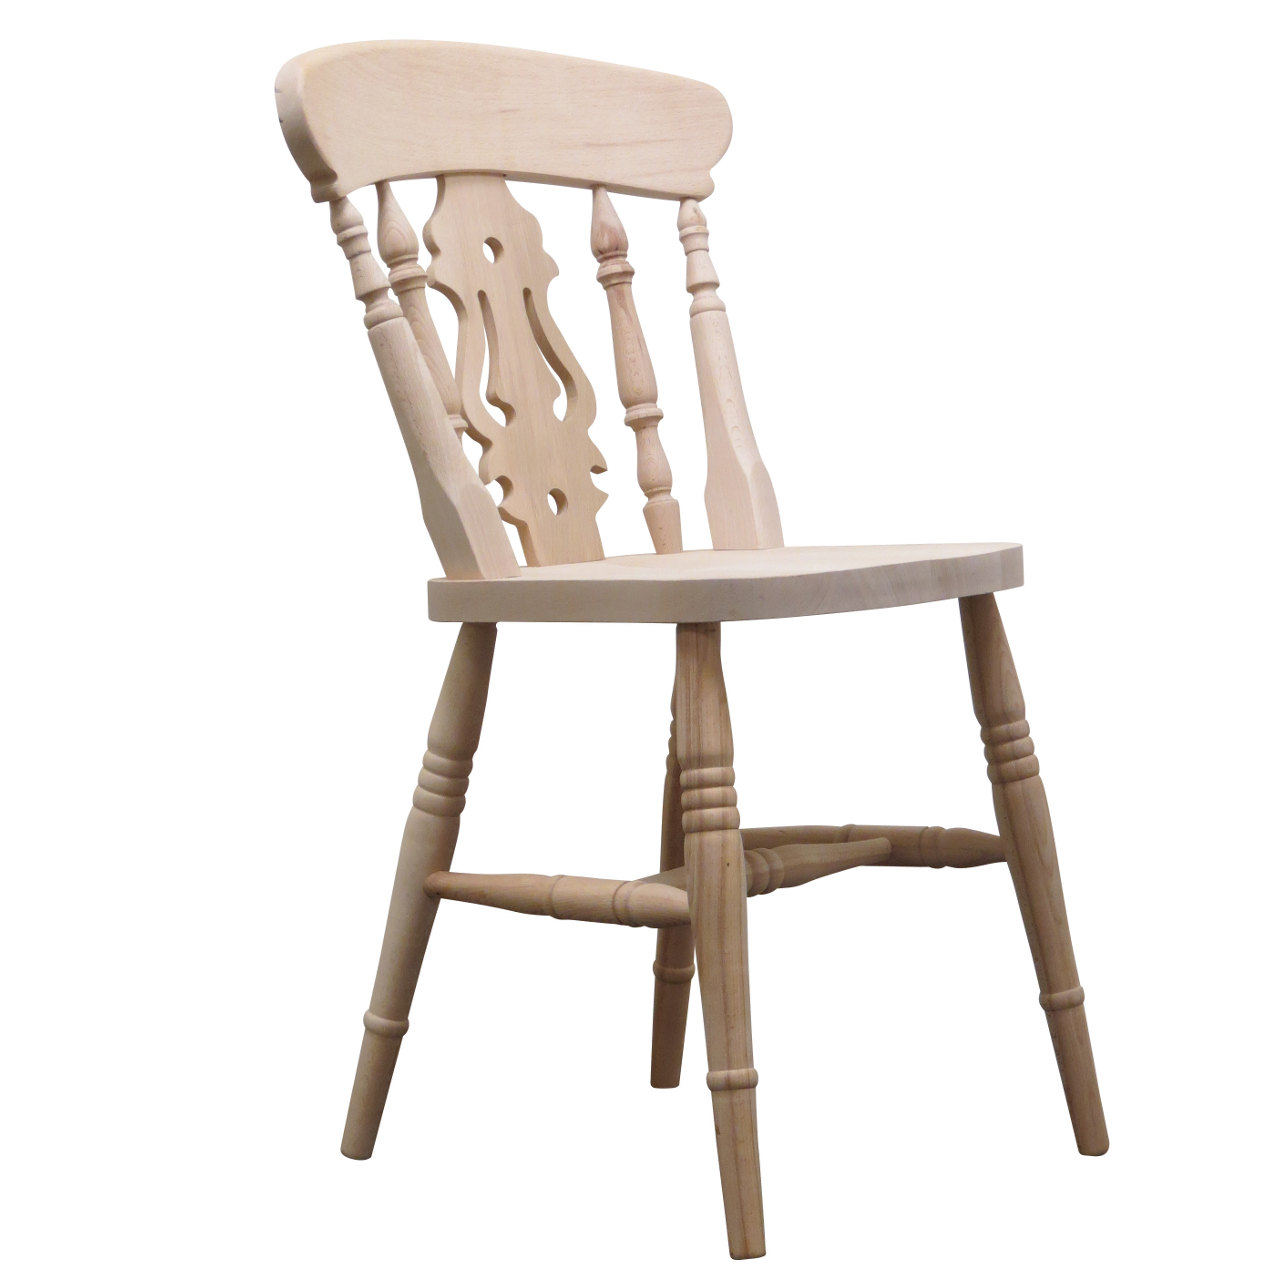 Manorcraft solid beech farmhouse chair